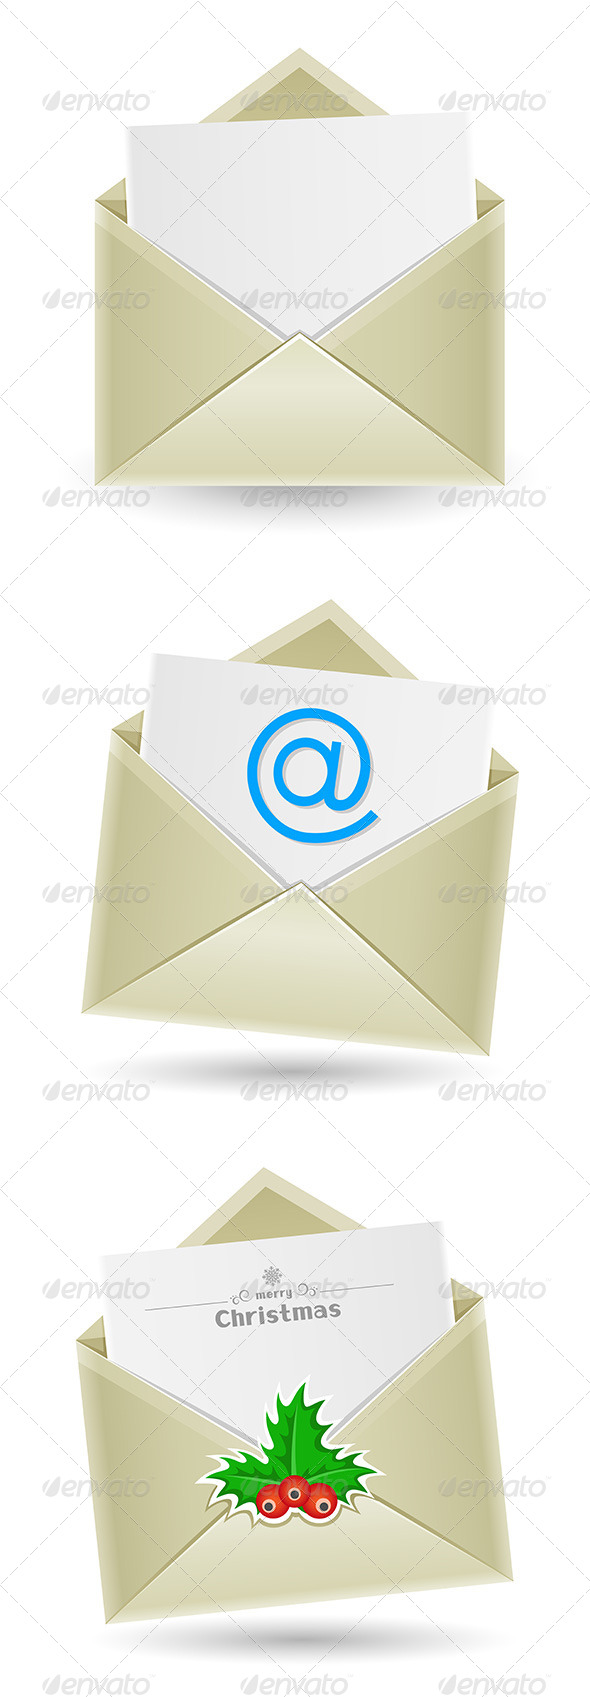 GraphicRiver Email Envelope 6455625